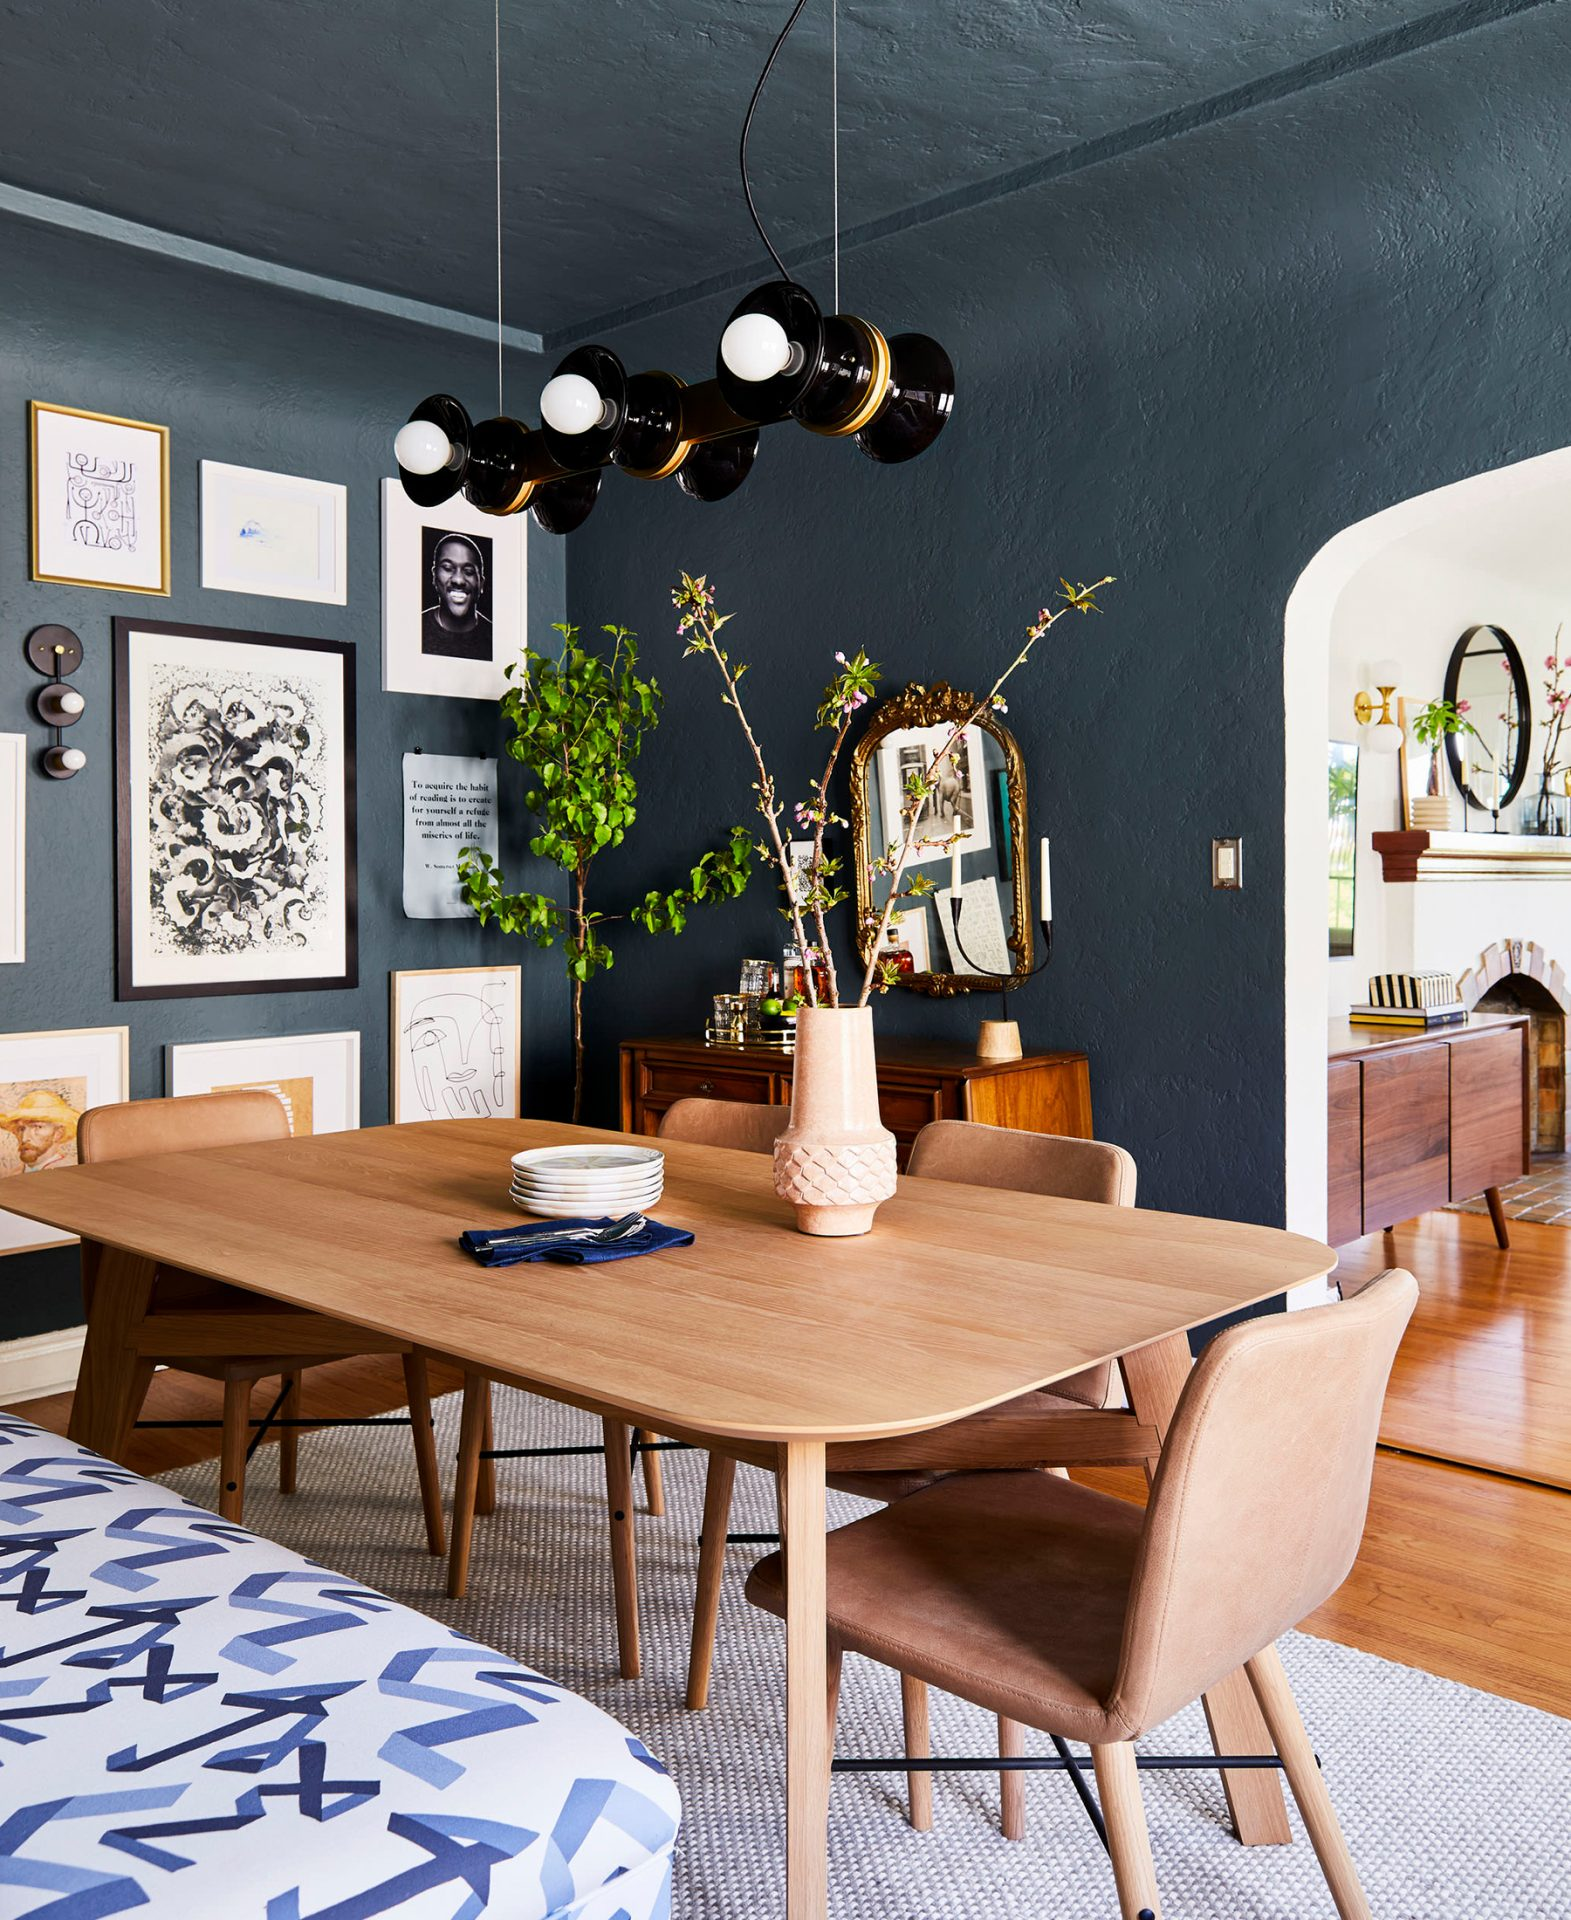 Emily Henderson designed this dining room with dark teal walls, leather Article chairs, and a light wood table.